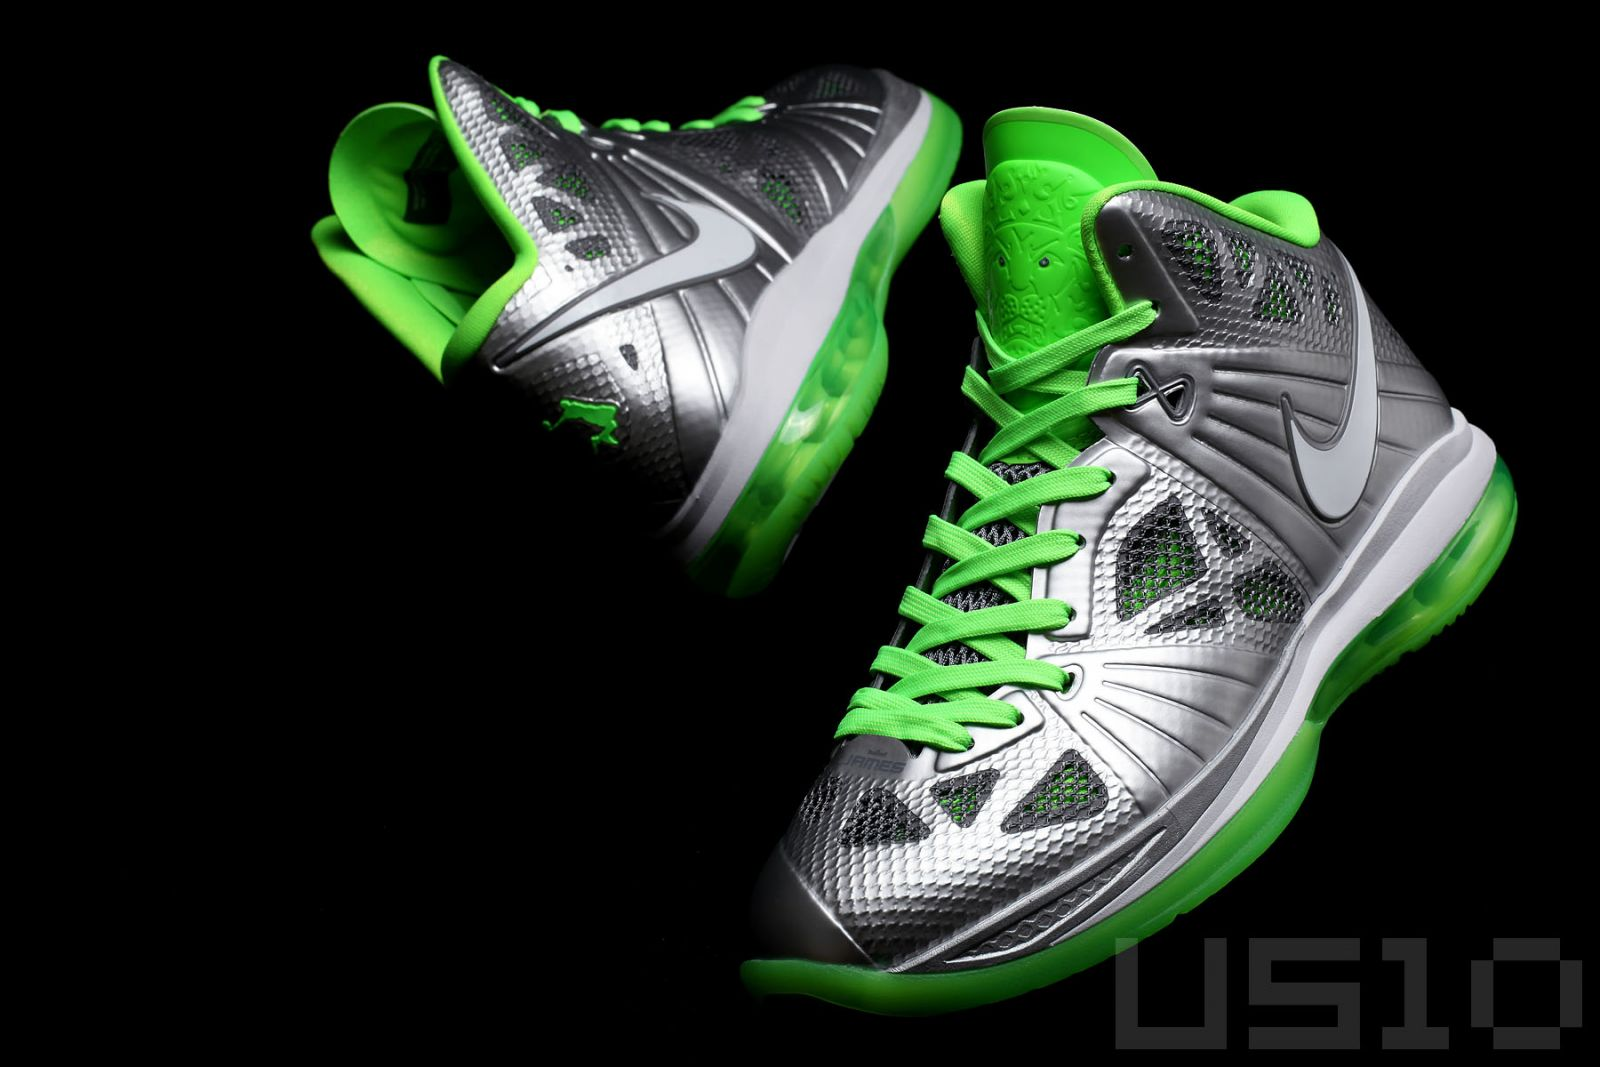 ba28fe9b07df The standard version of the LeBron 8 may not have released